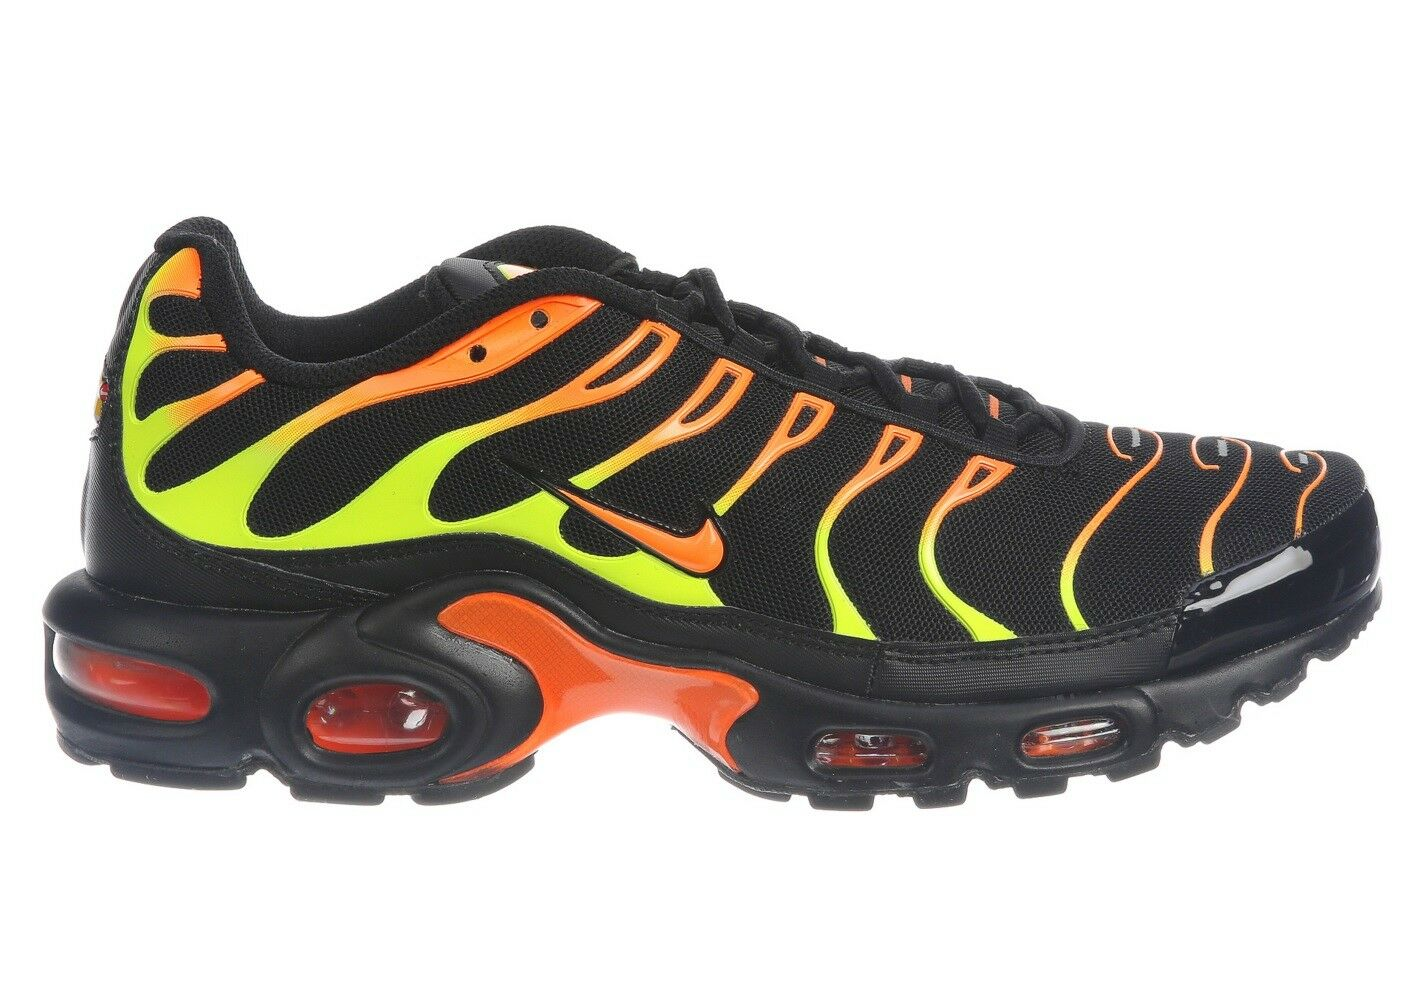 Nike Air Max Plus Mens 852630-033 Black Volt Orange Running Shoes Size 13